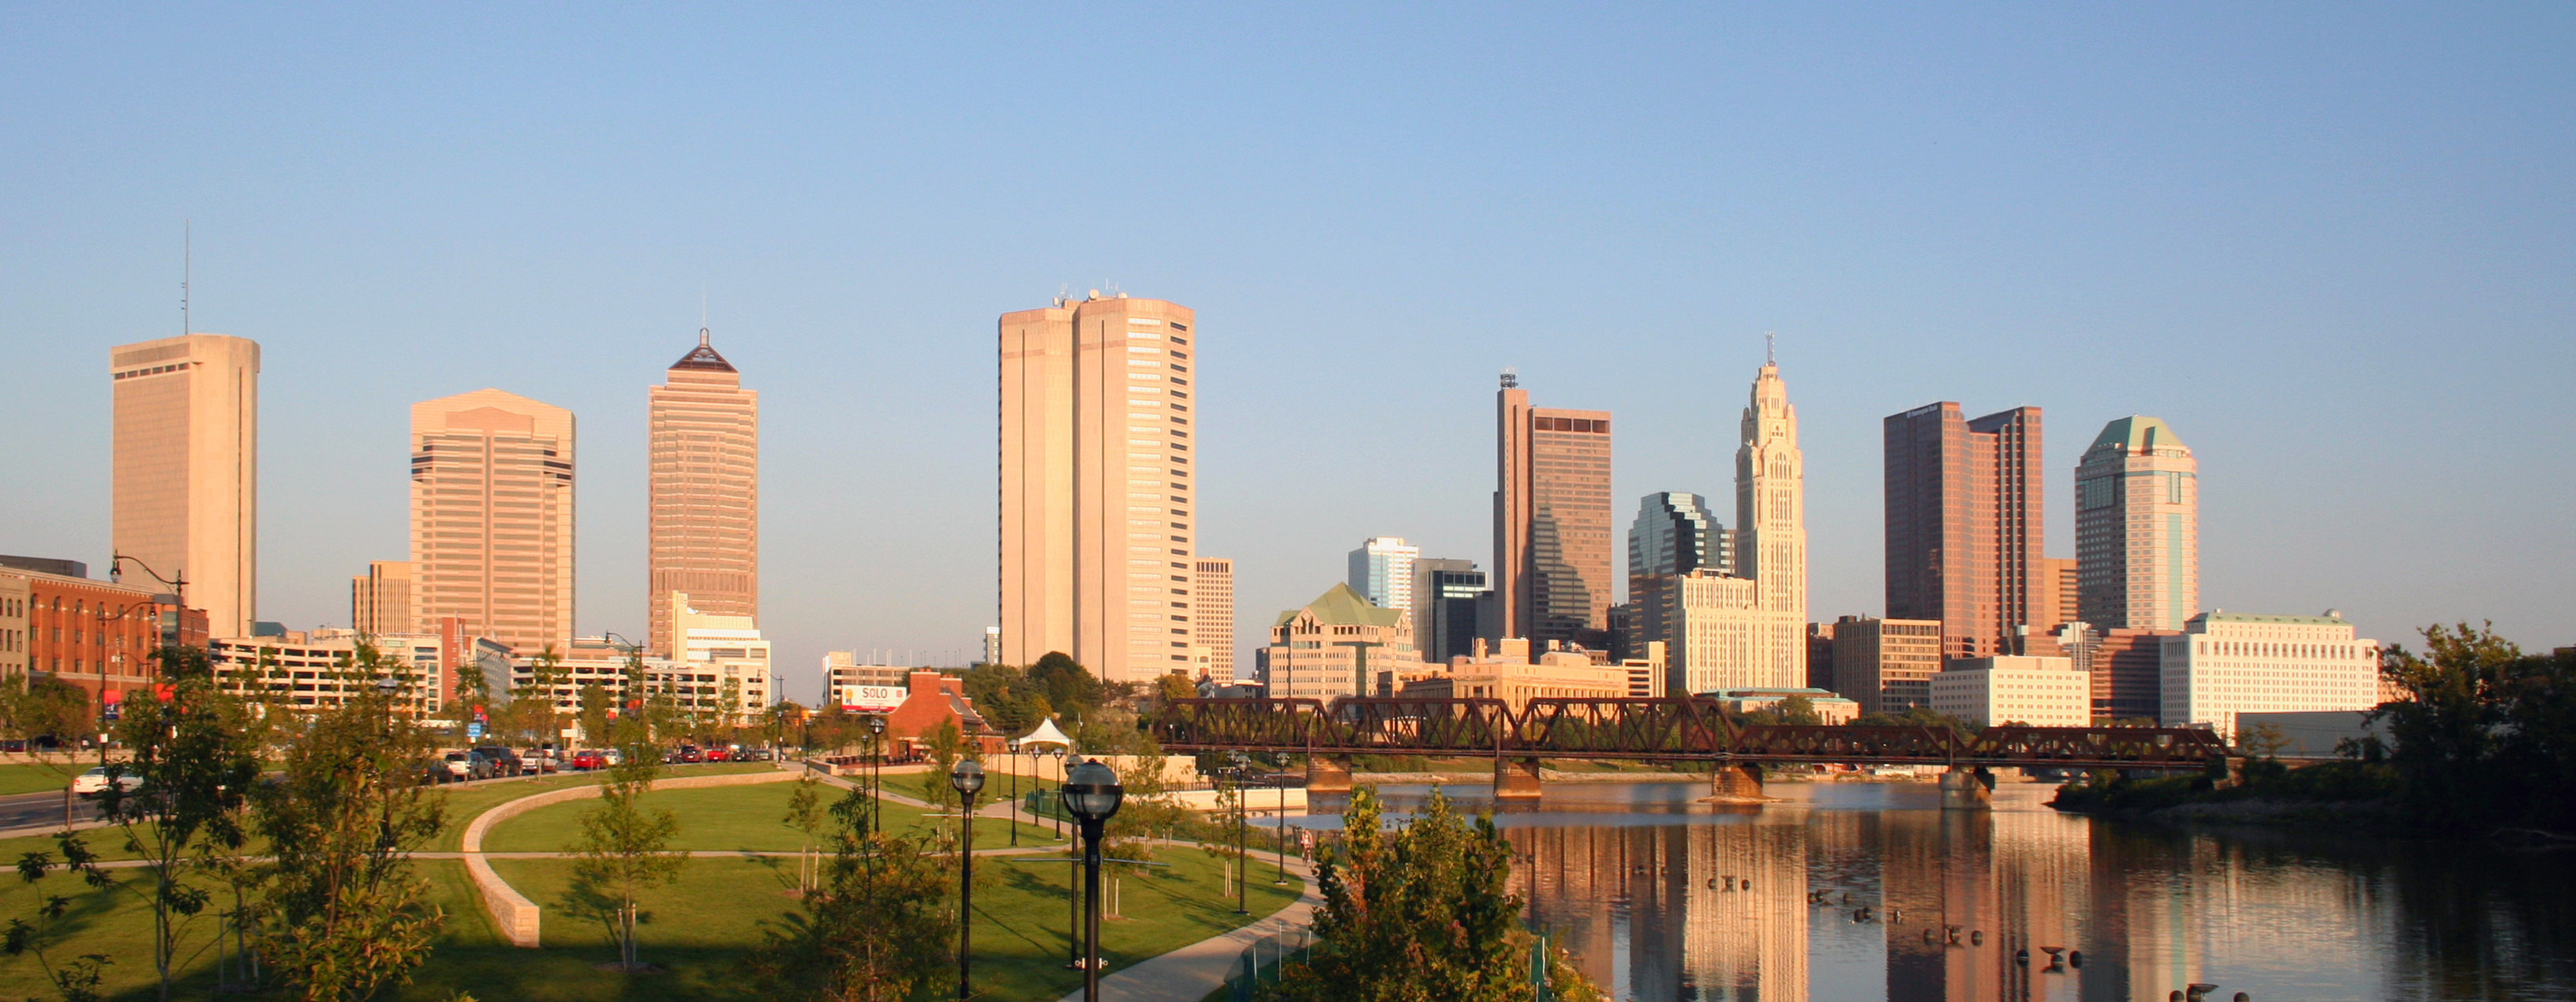 Columbus-ohio-skyline-panorama-1